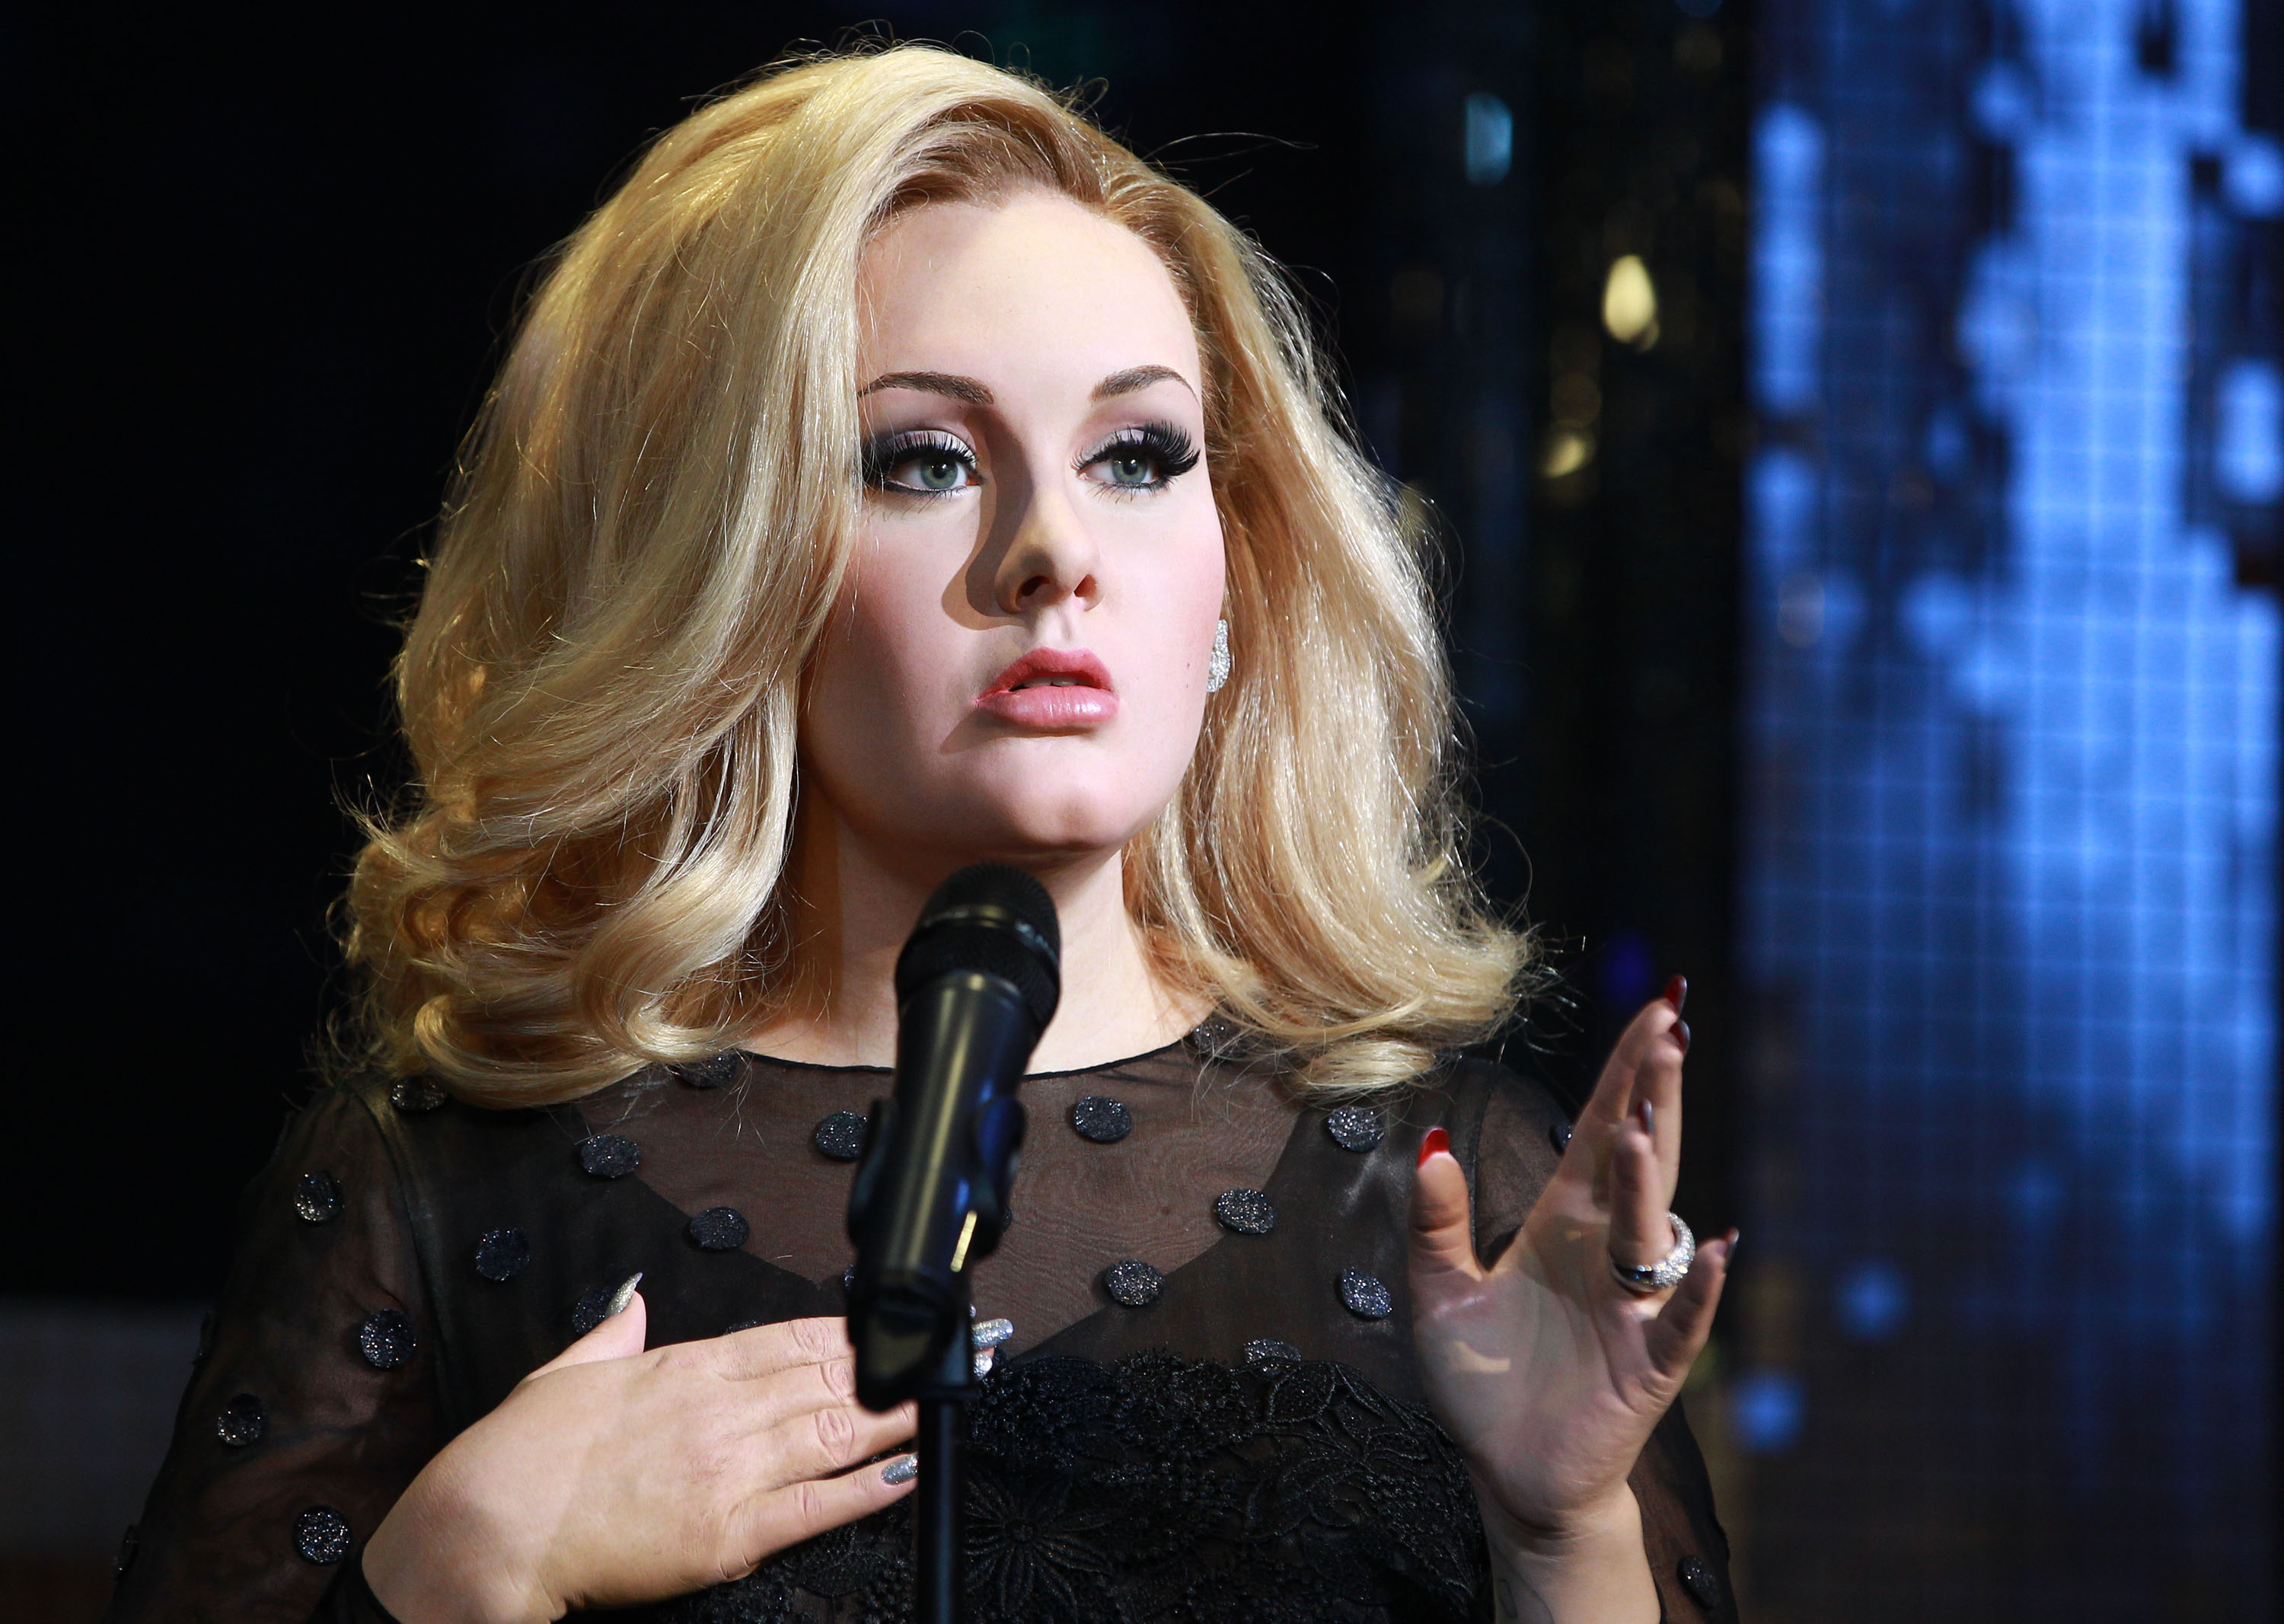 Adele's new waxwork is unveiled at Madame Tussauds on July 3, 2013 in London.